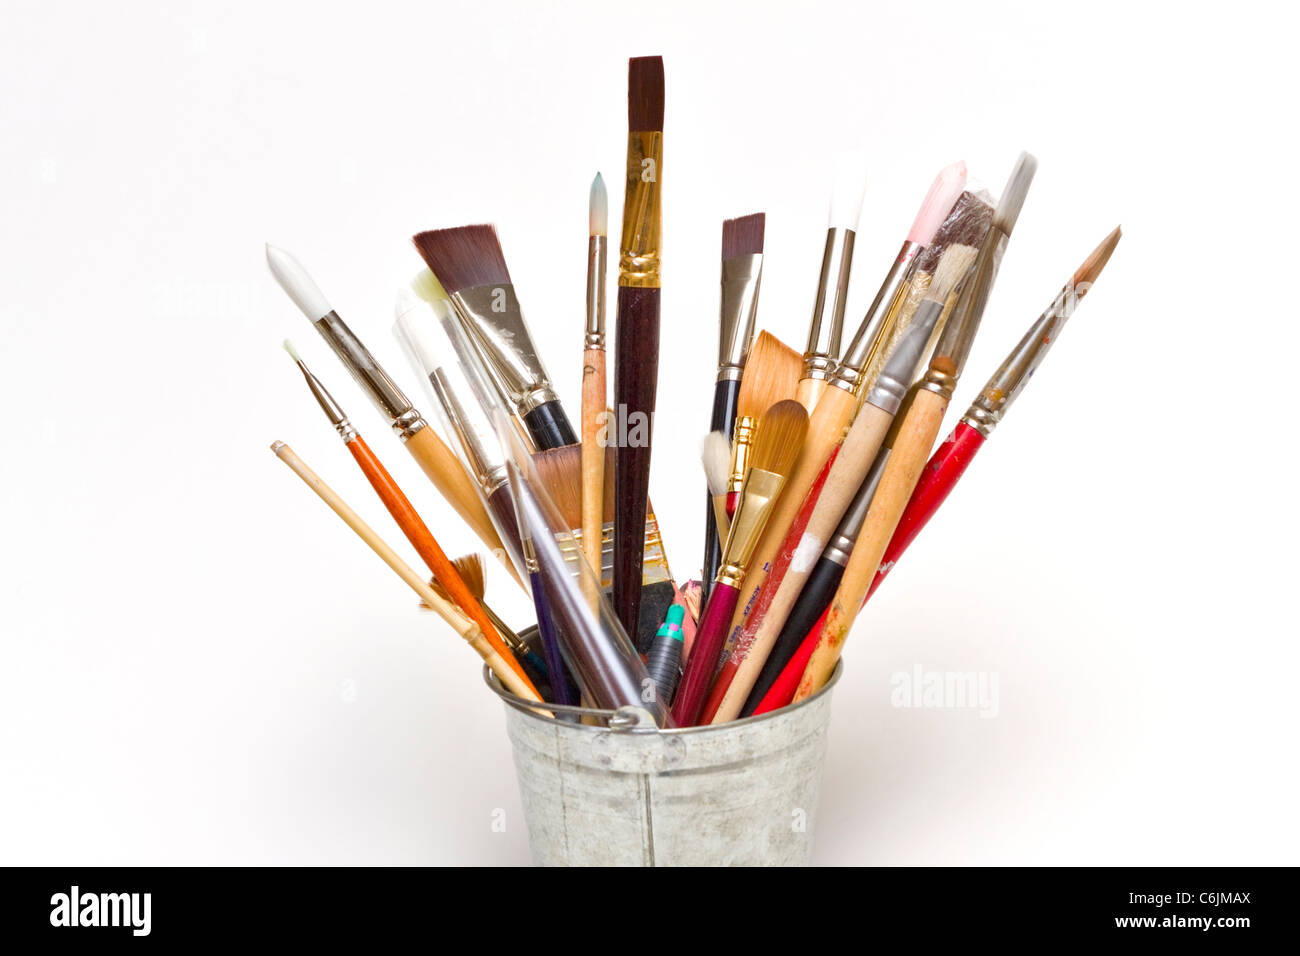 Artists paint brushes in a small bucket on a white background - Stock Image